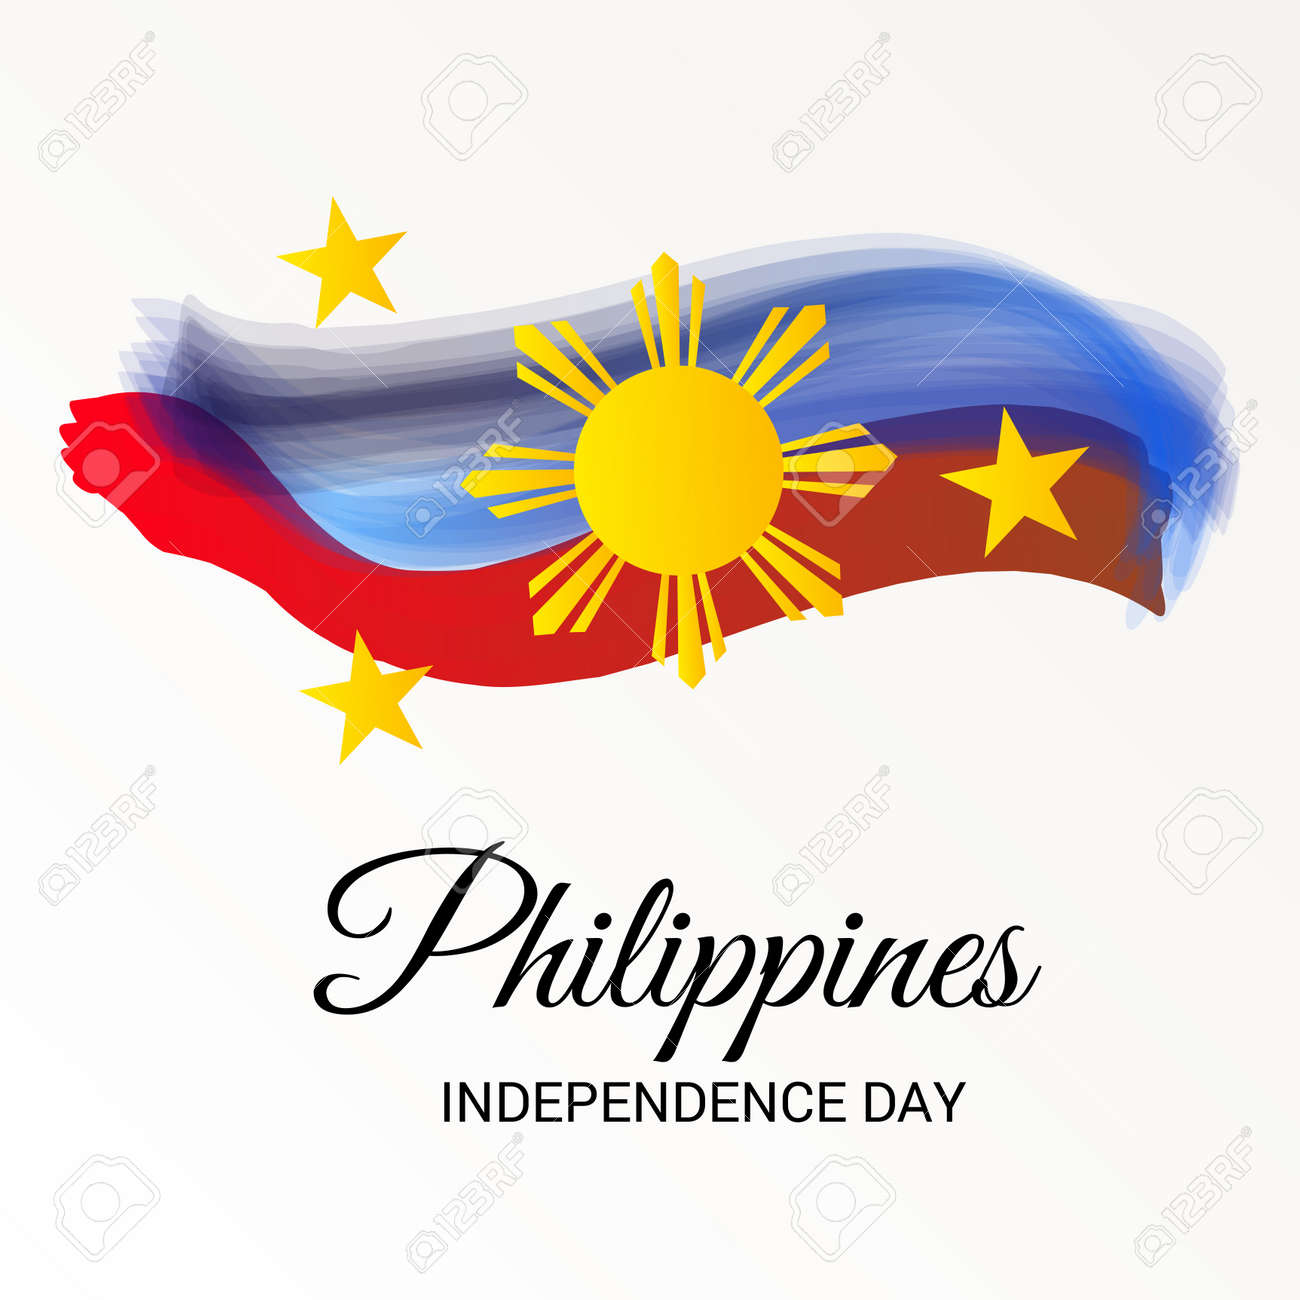 philippines independence day royalty free cliparts vectors and rh 123rf com